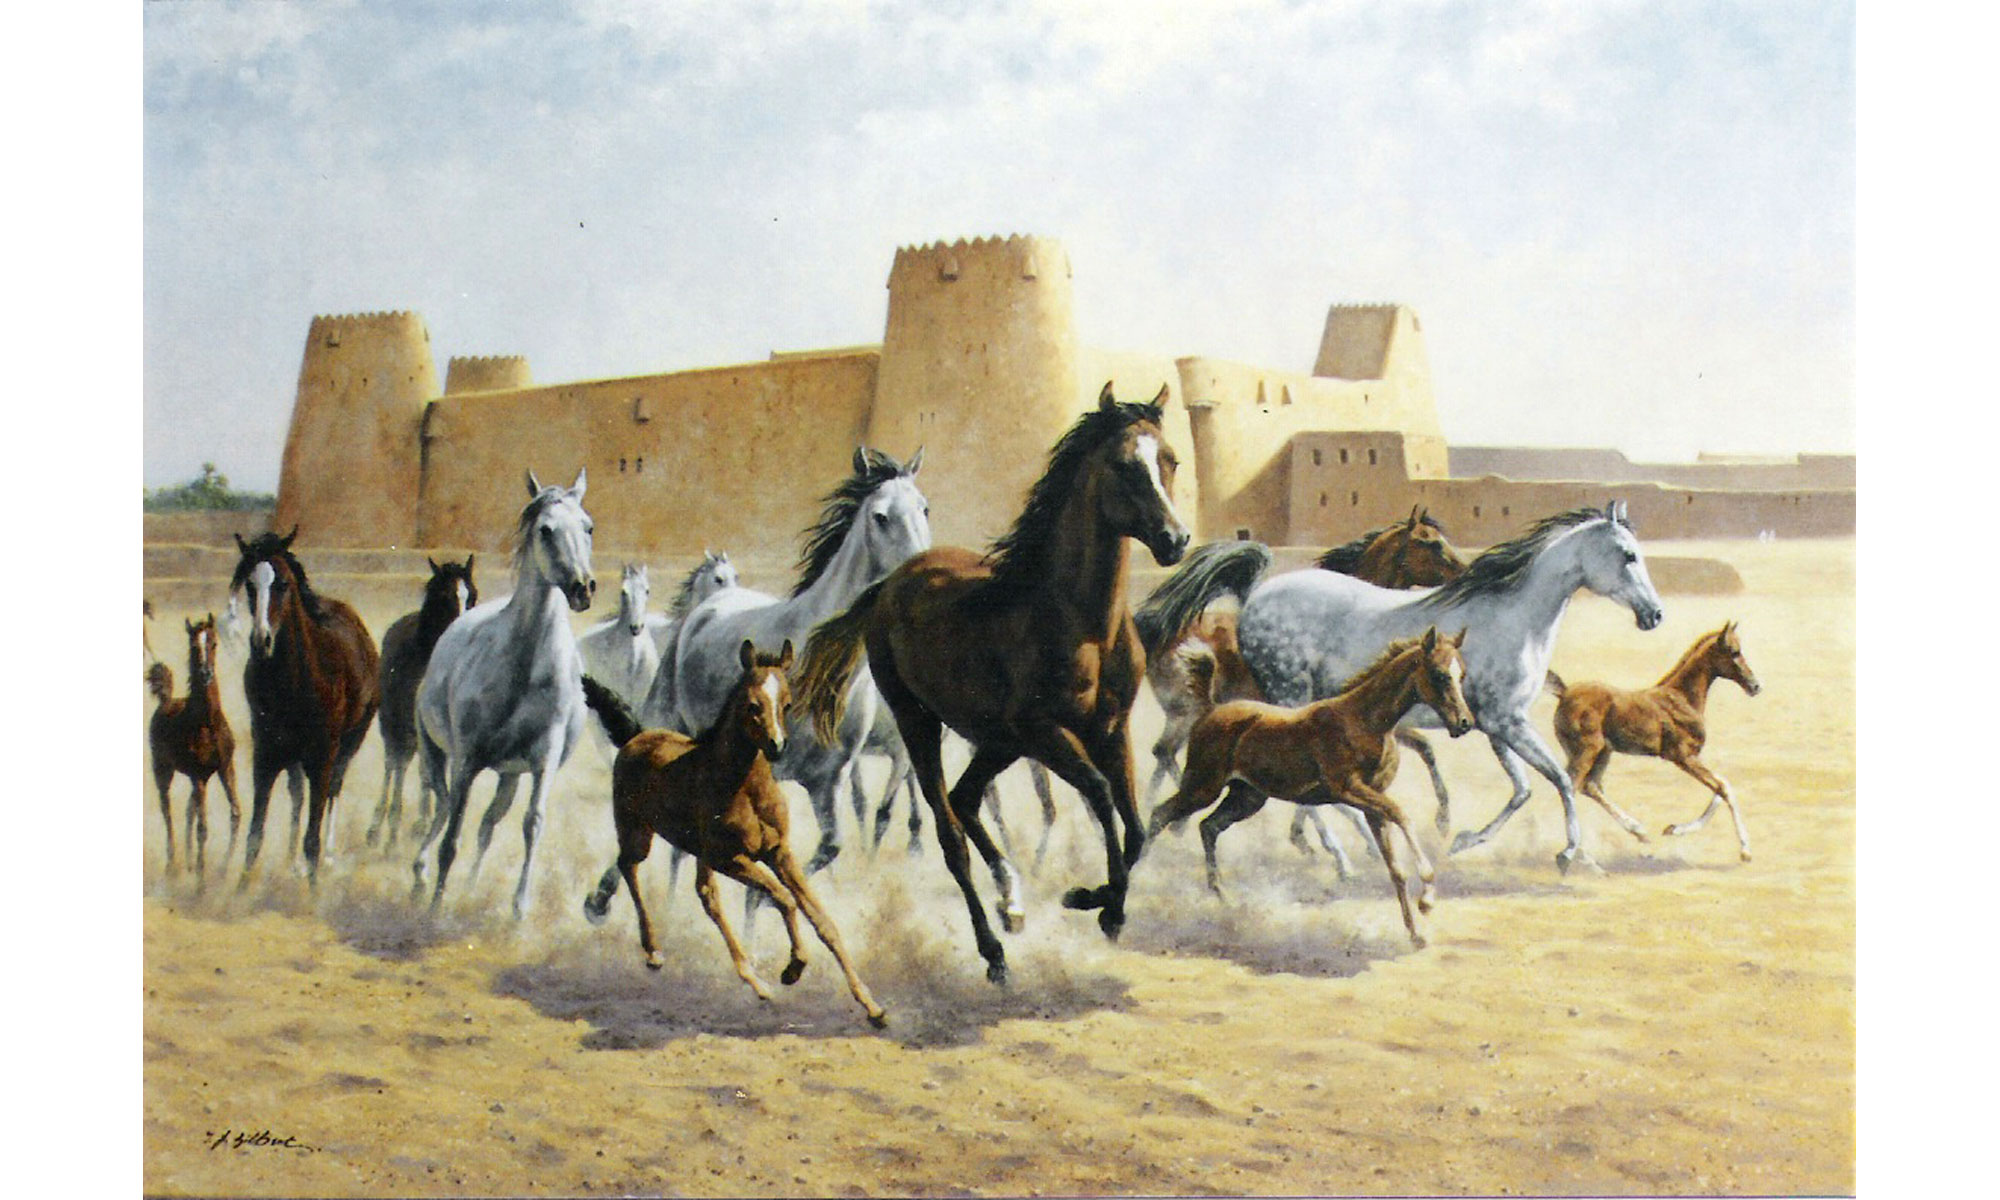 Stables at Hofuf Painting by Terence J Gilbert Oil on Board